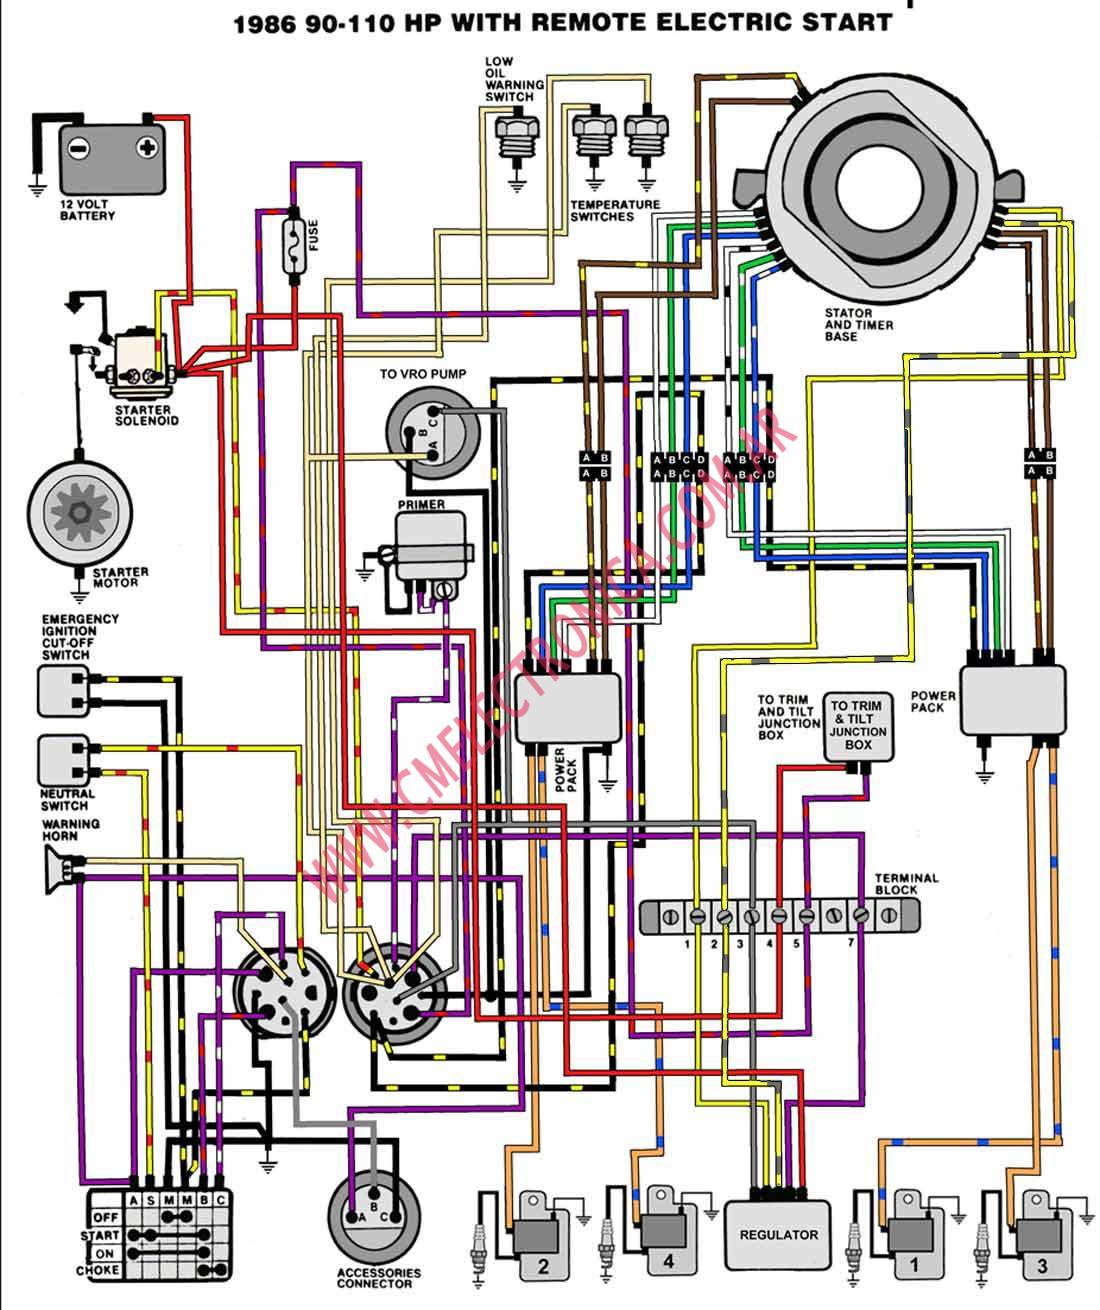 Kymco Super 8 Wiring Diagram Motorrad Bild Idee 50cc Scooter Wire 100 2008 Shop Manual 2014 Genuine